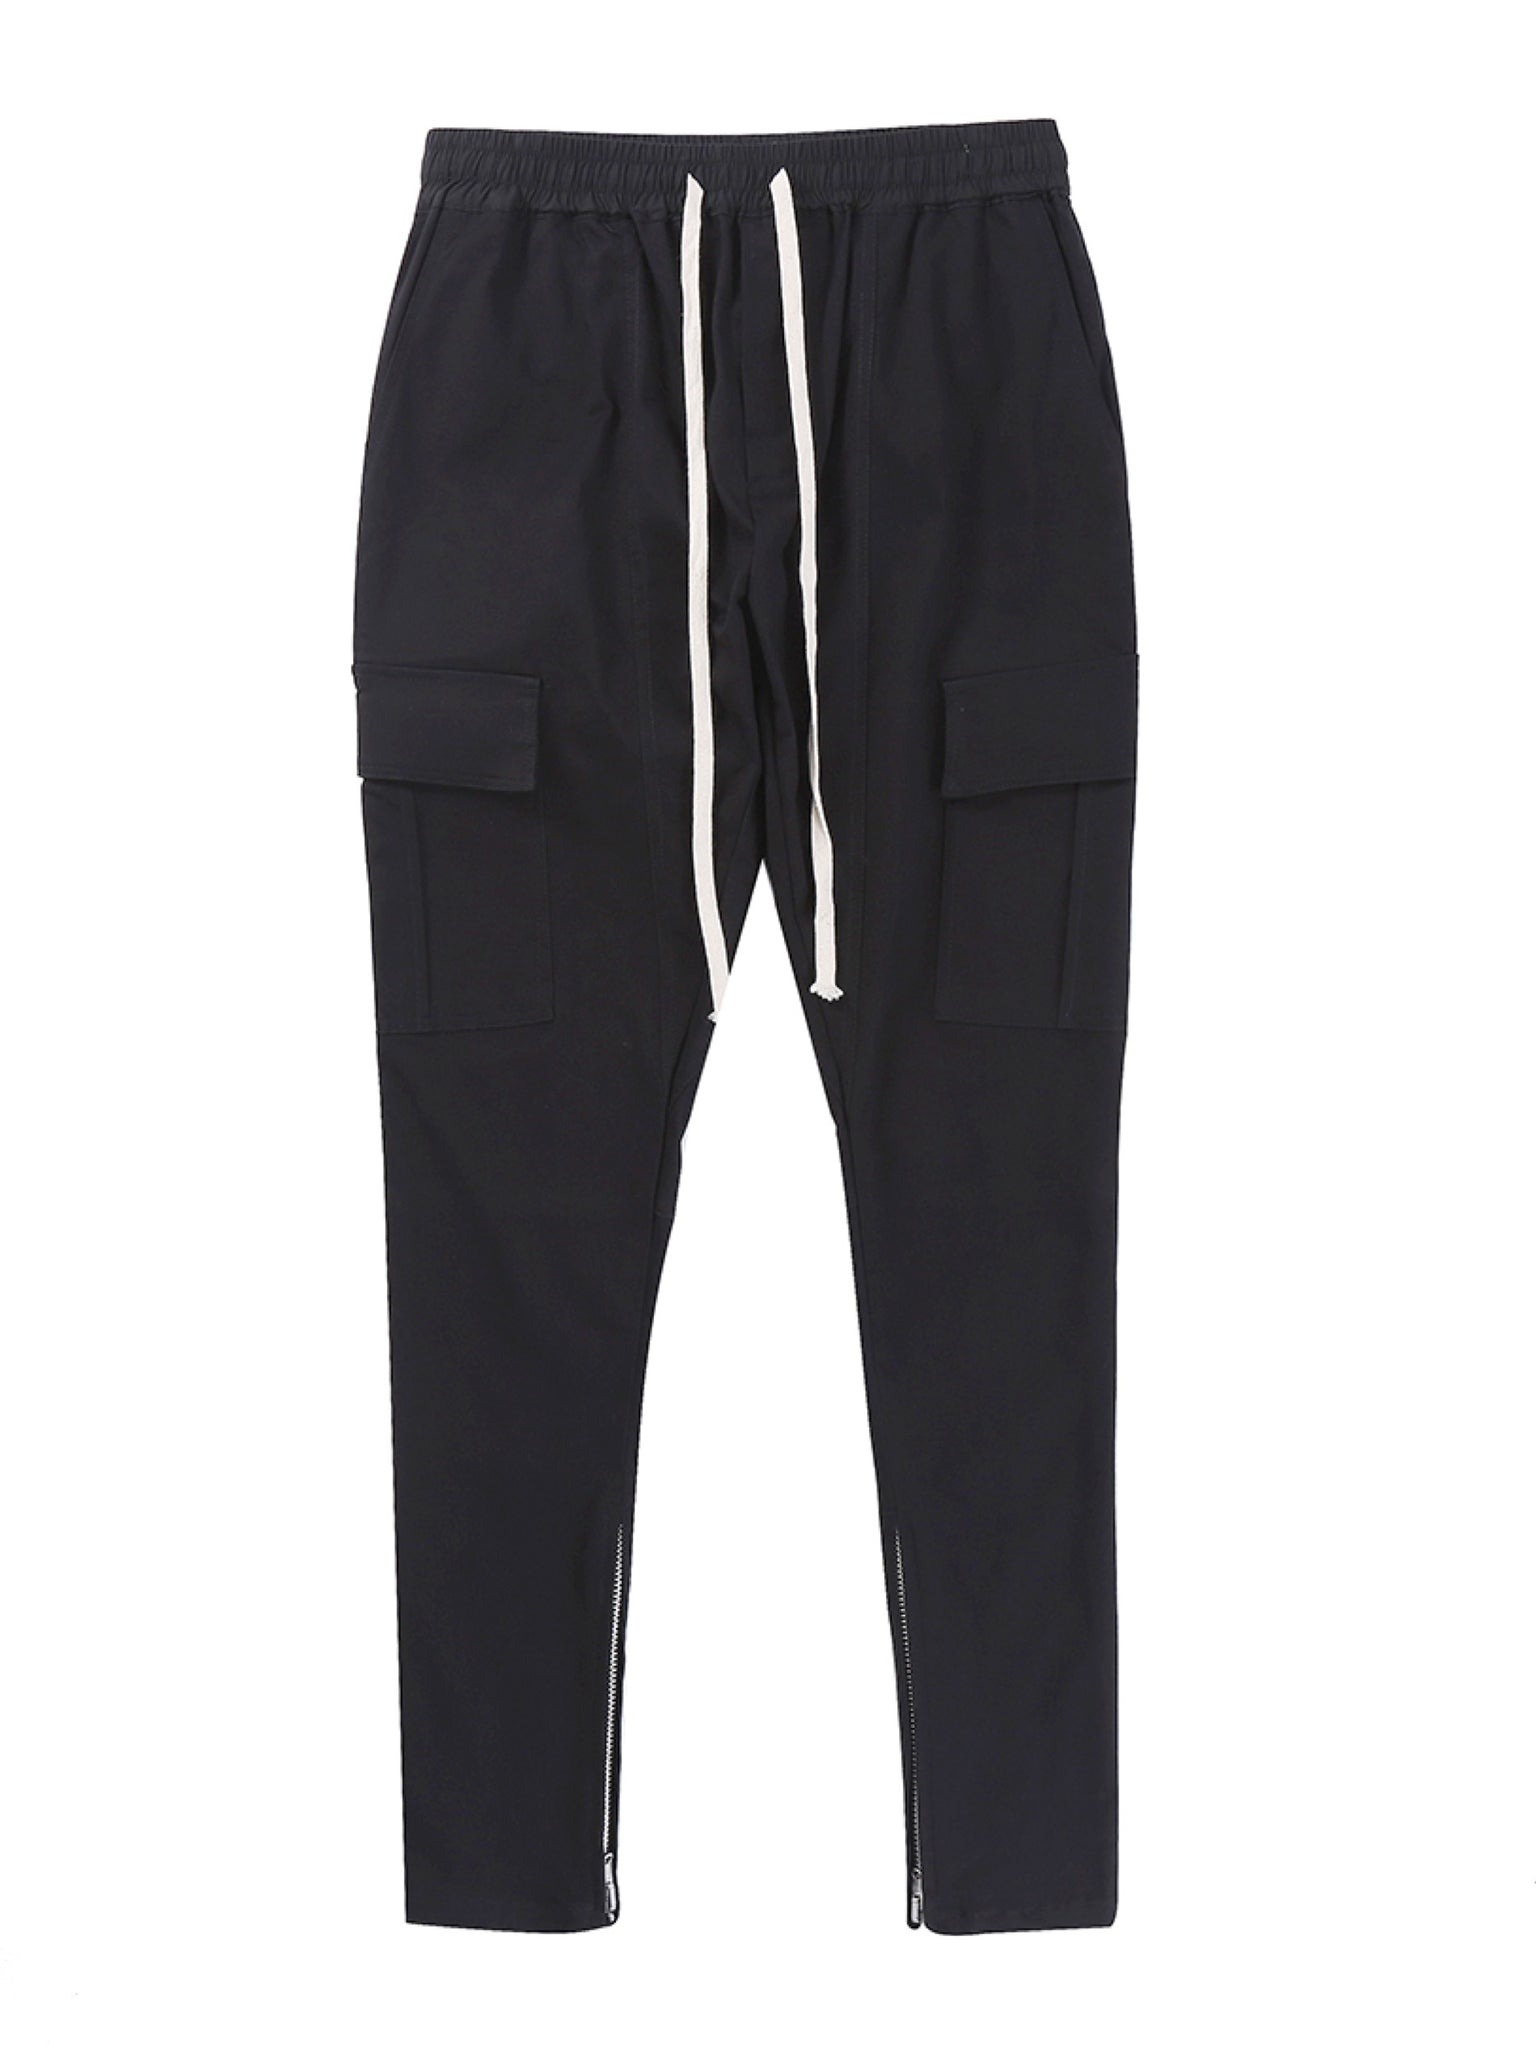 SLIM FIT CARGO DRAWSTRING PANTS BLACK